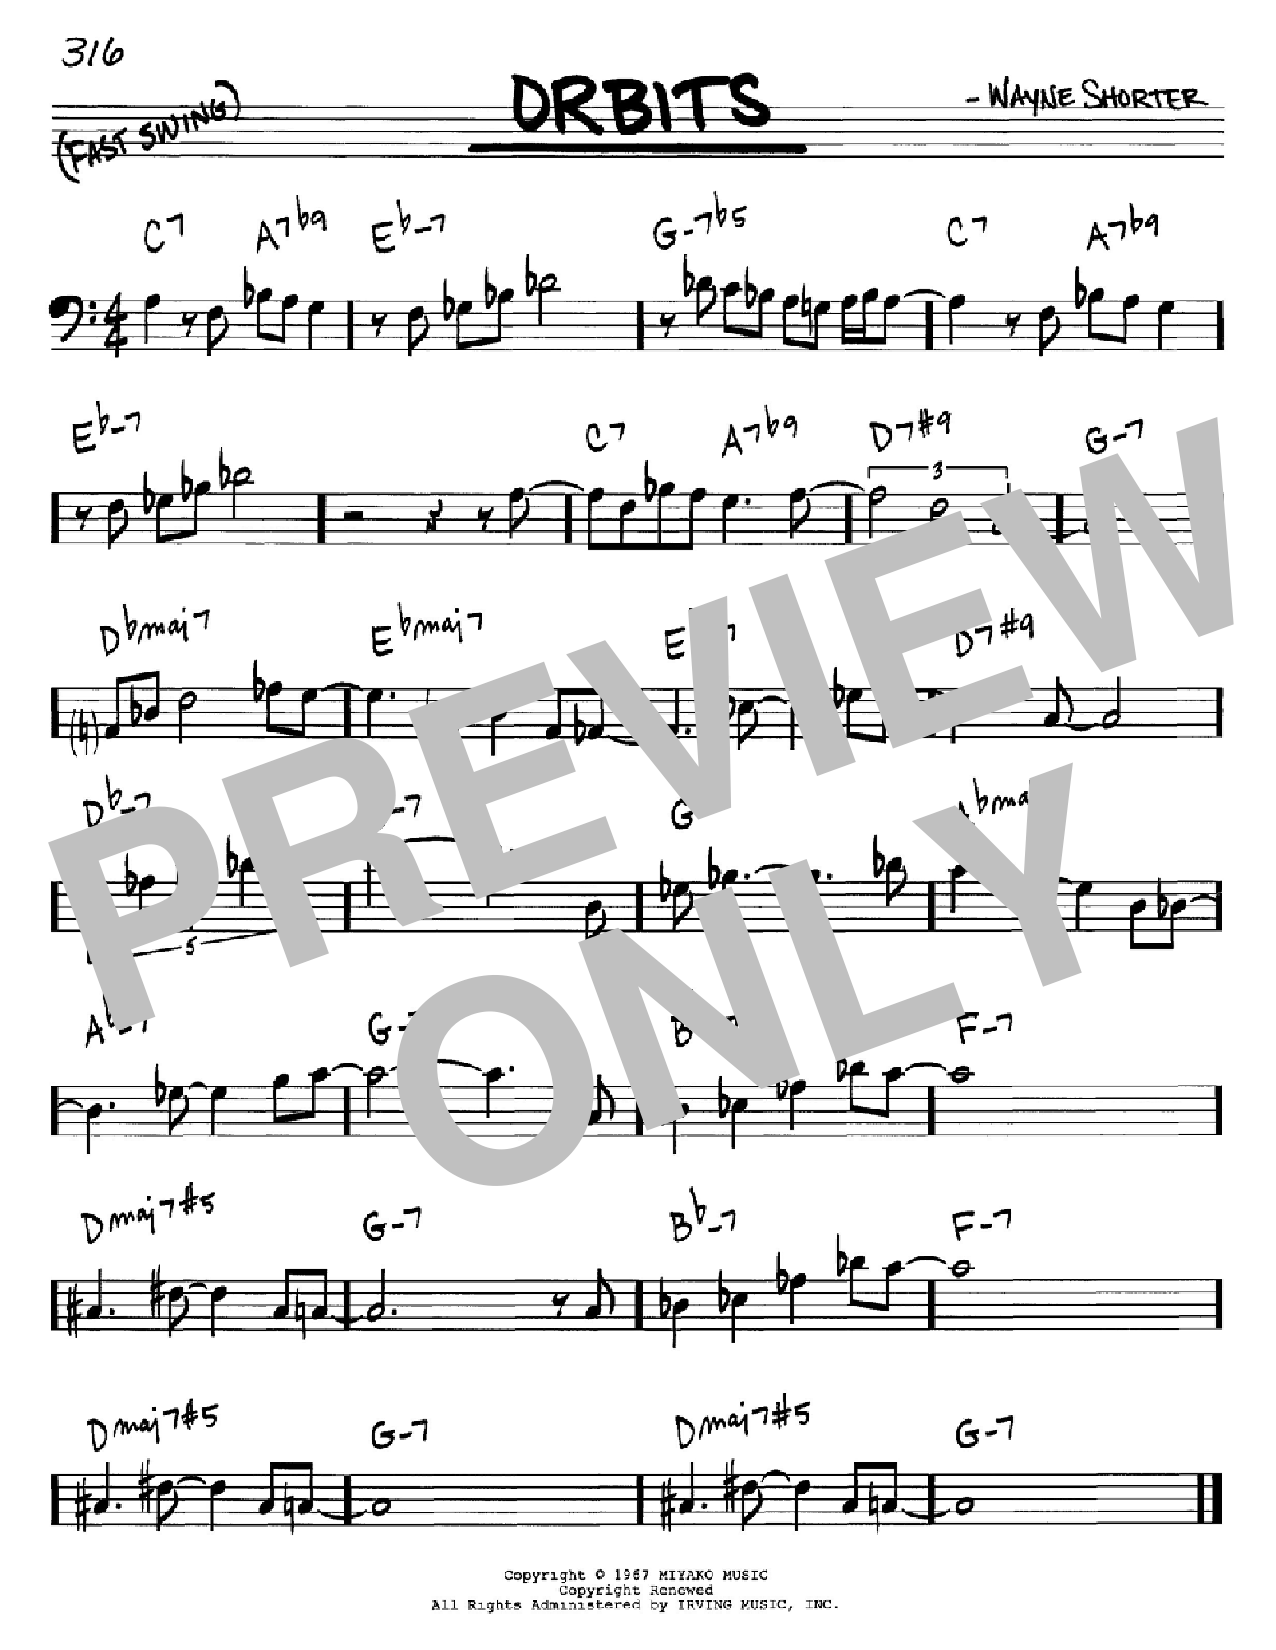 Orbits Sheet Music